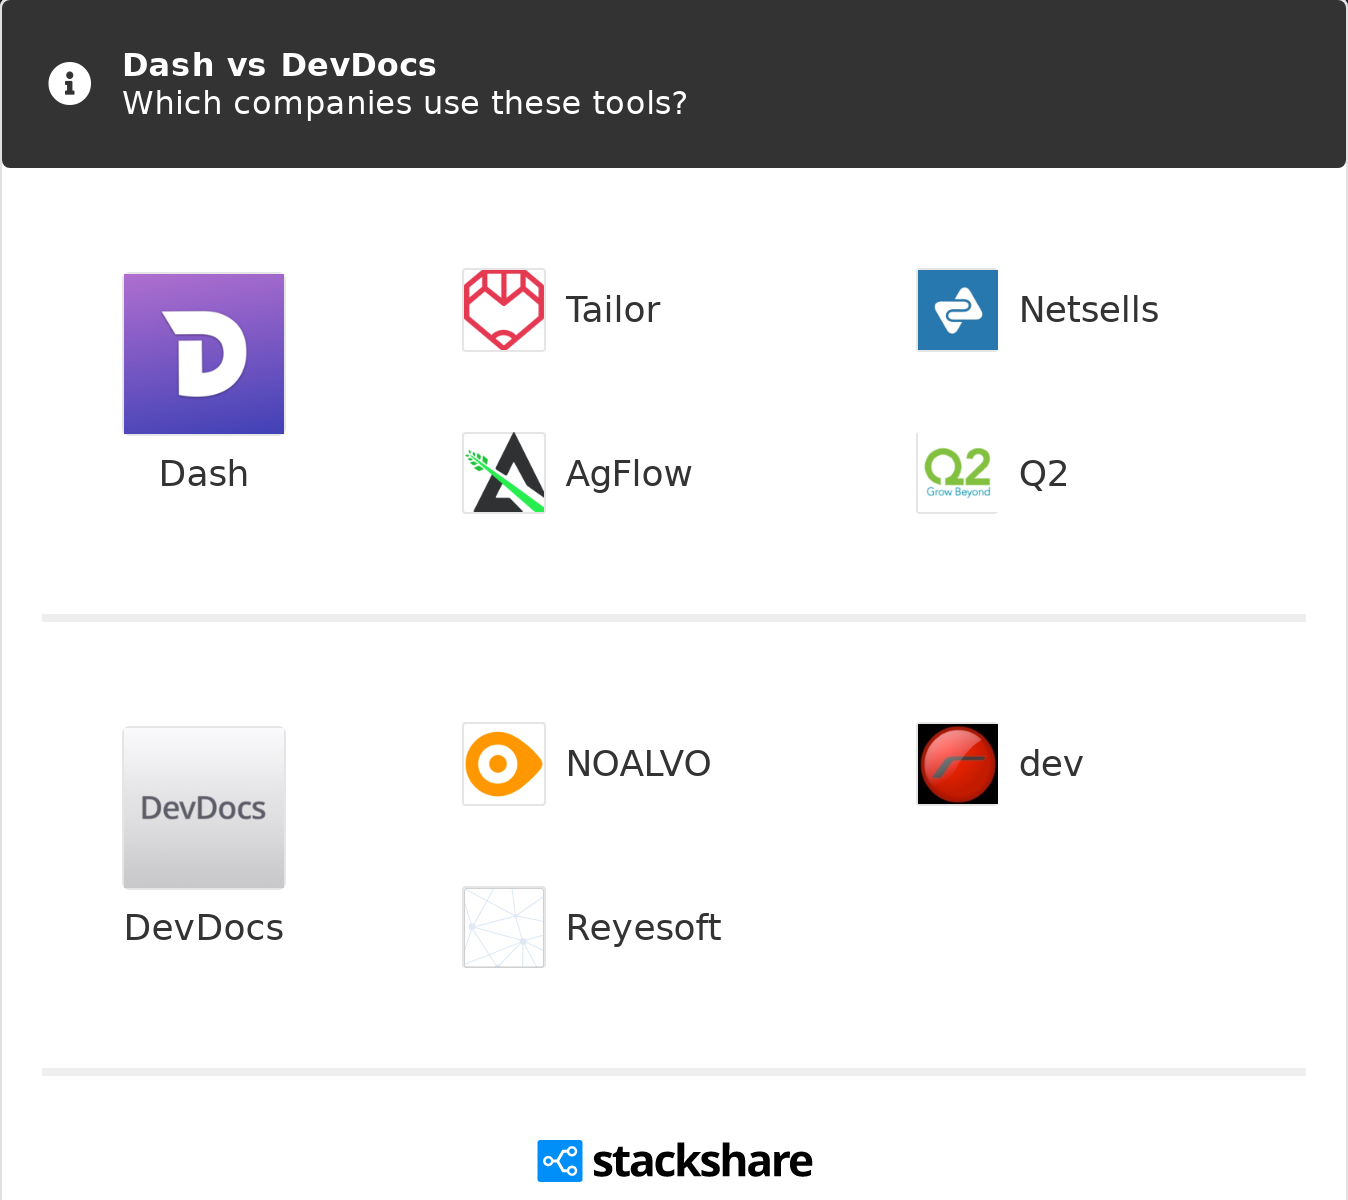 Dash vs DevDocs | What are the differences?